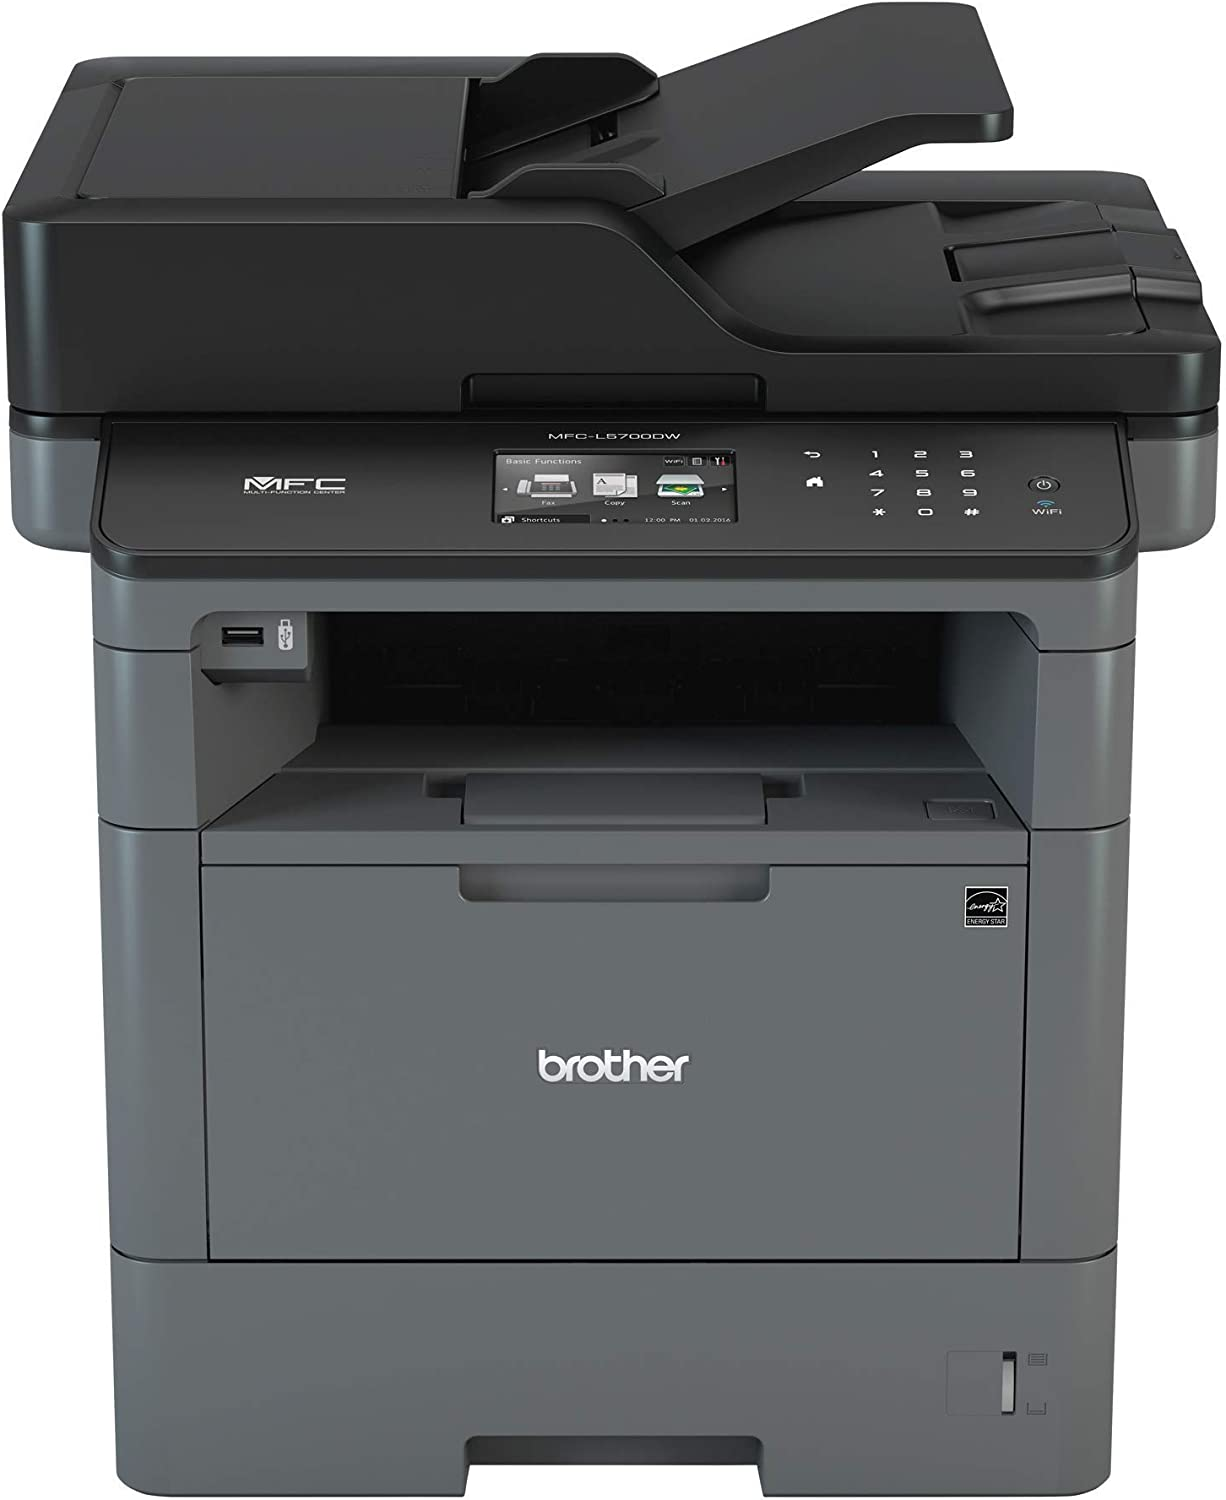 Brother Monochrome Laser Multifunction All-in-One Printer, MFC-L5700DW, Flexible Network Connectivity, Mobile Printing & Scanning, Duplex Printing, ...